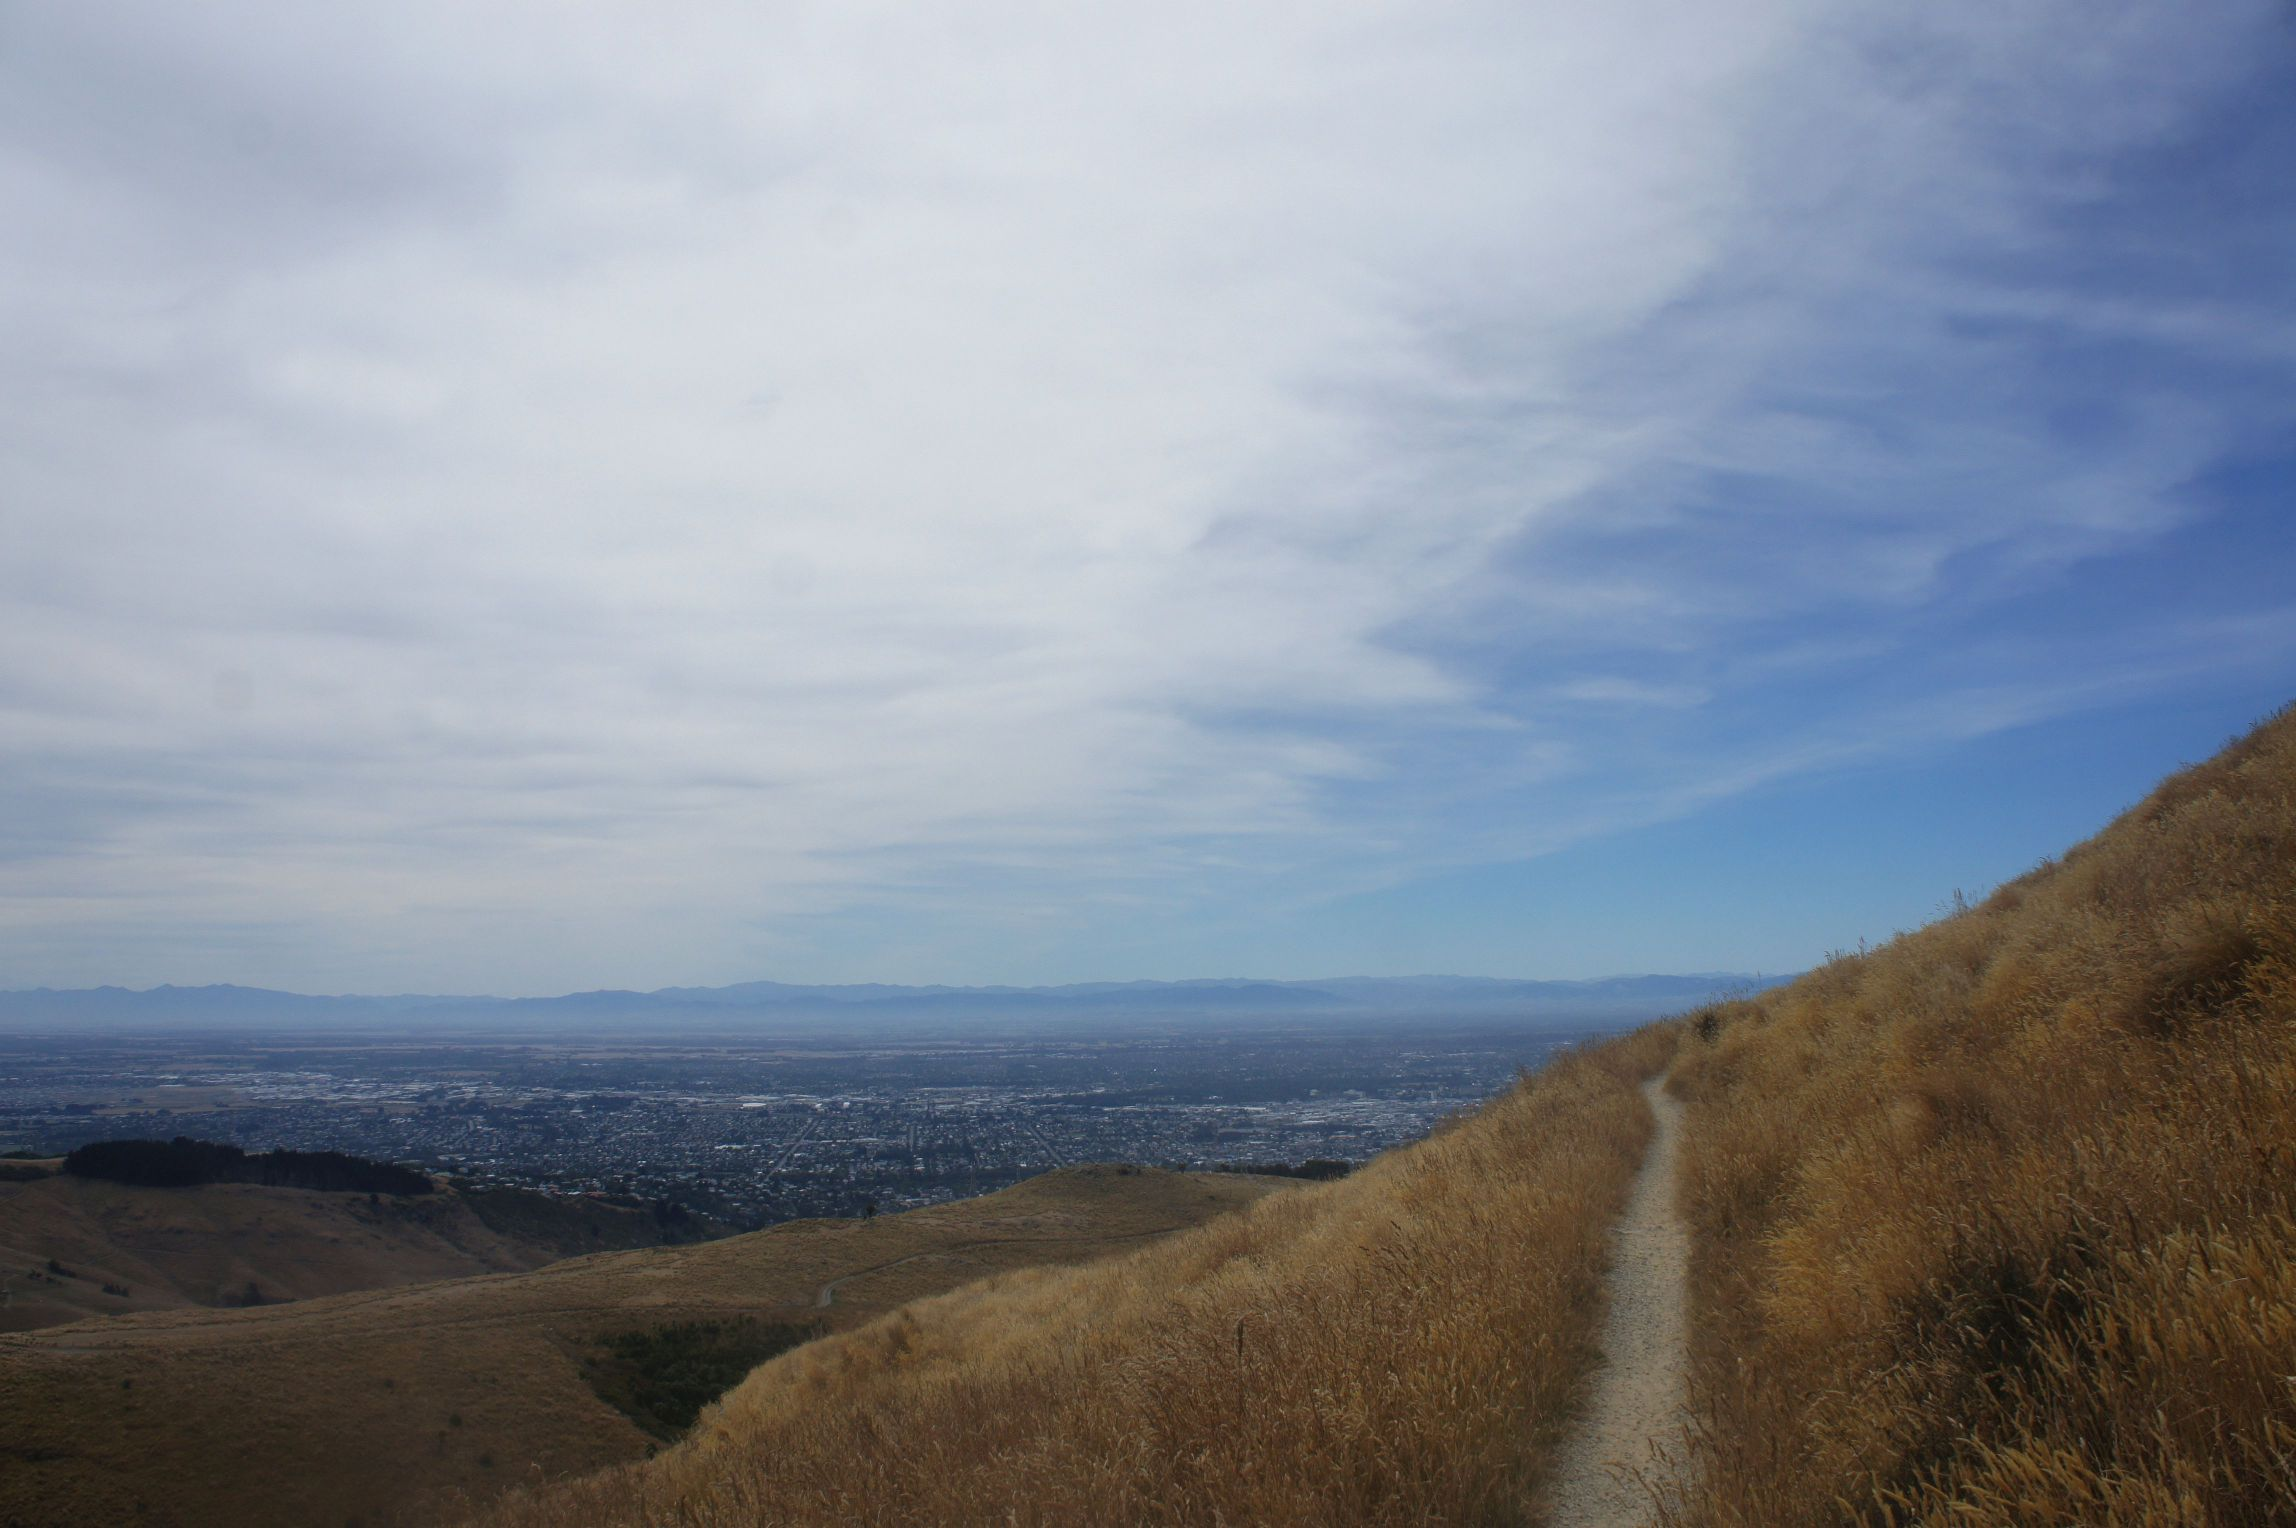 Looking out over Christchurch from the Port Hills.